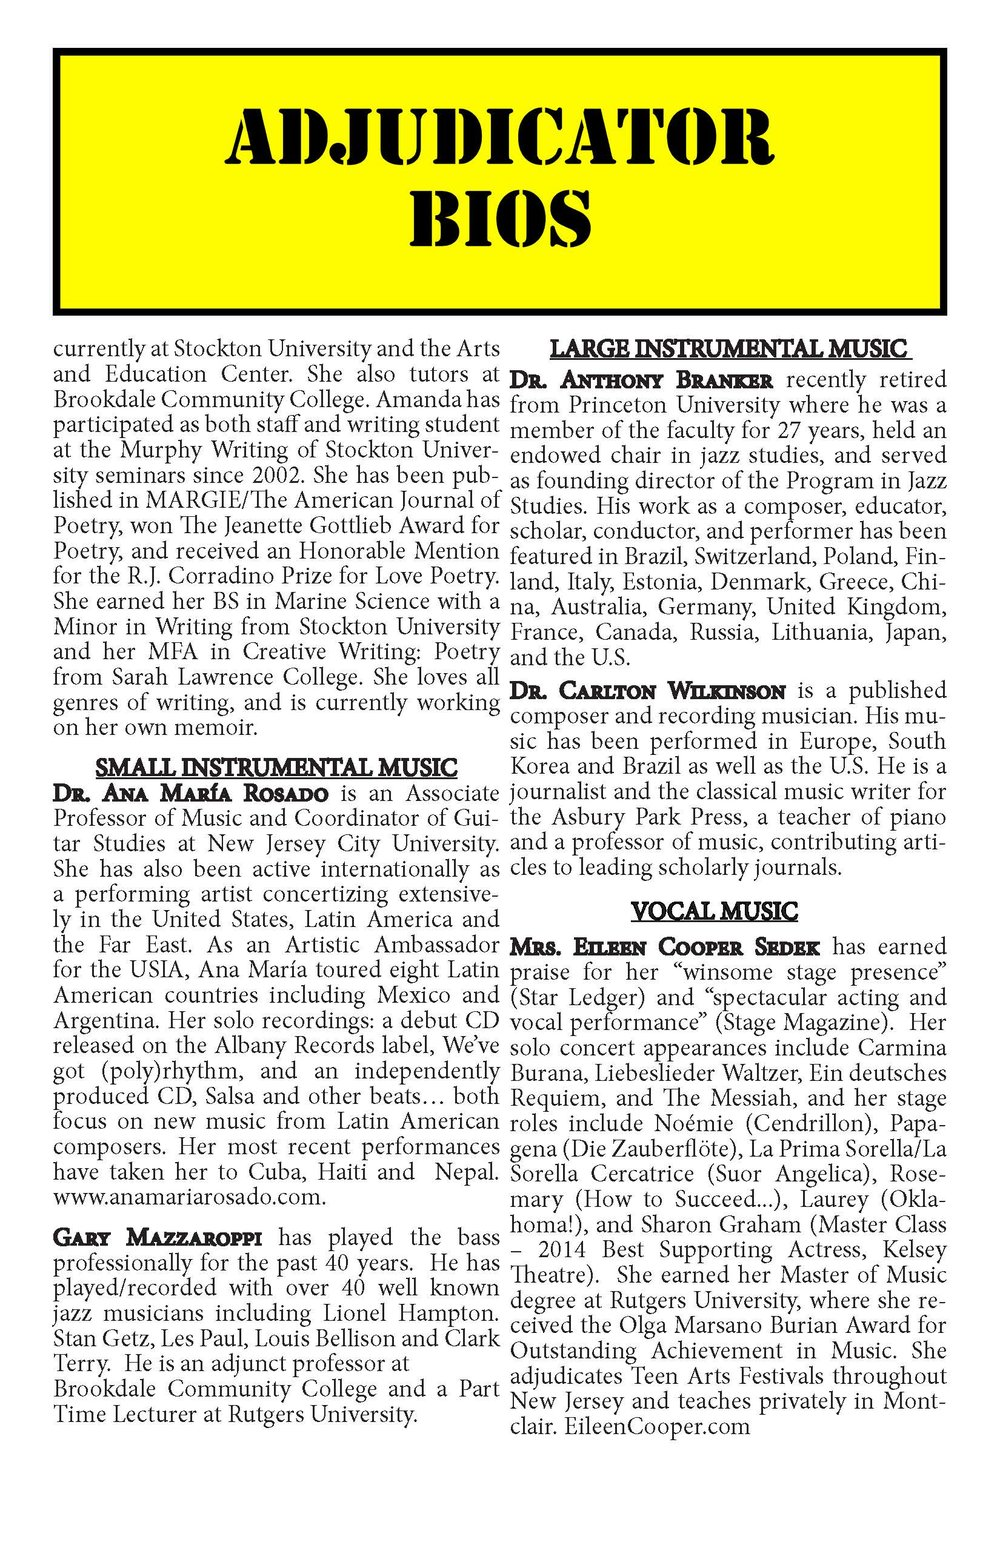 State Festival Program FINAL DRAFT_Page_23.jpg